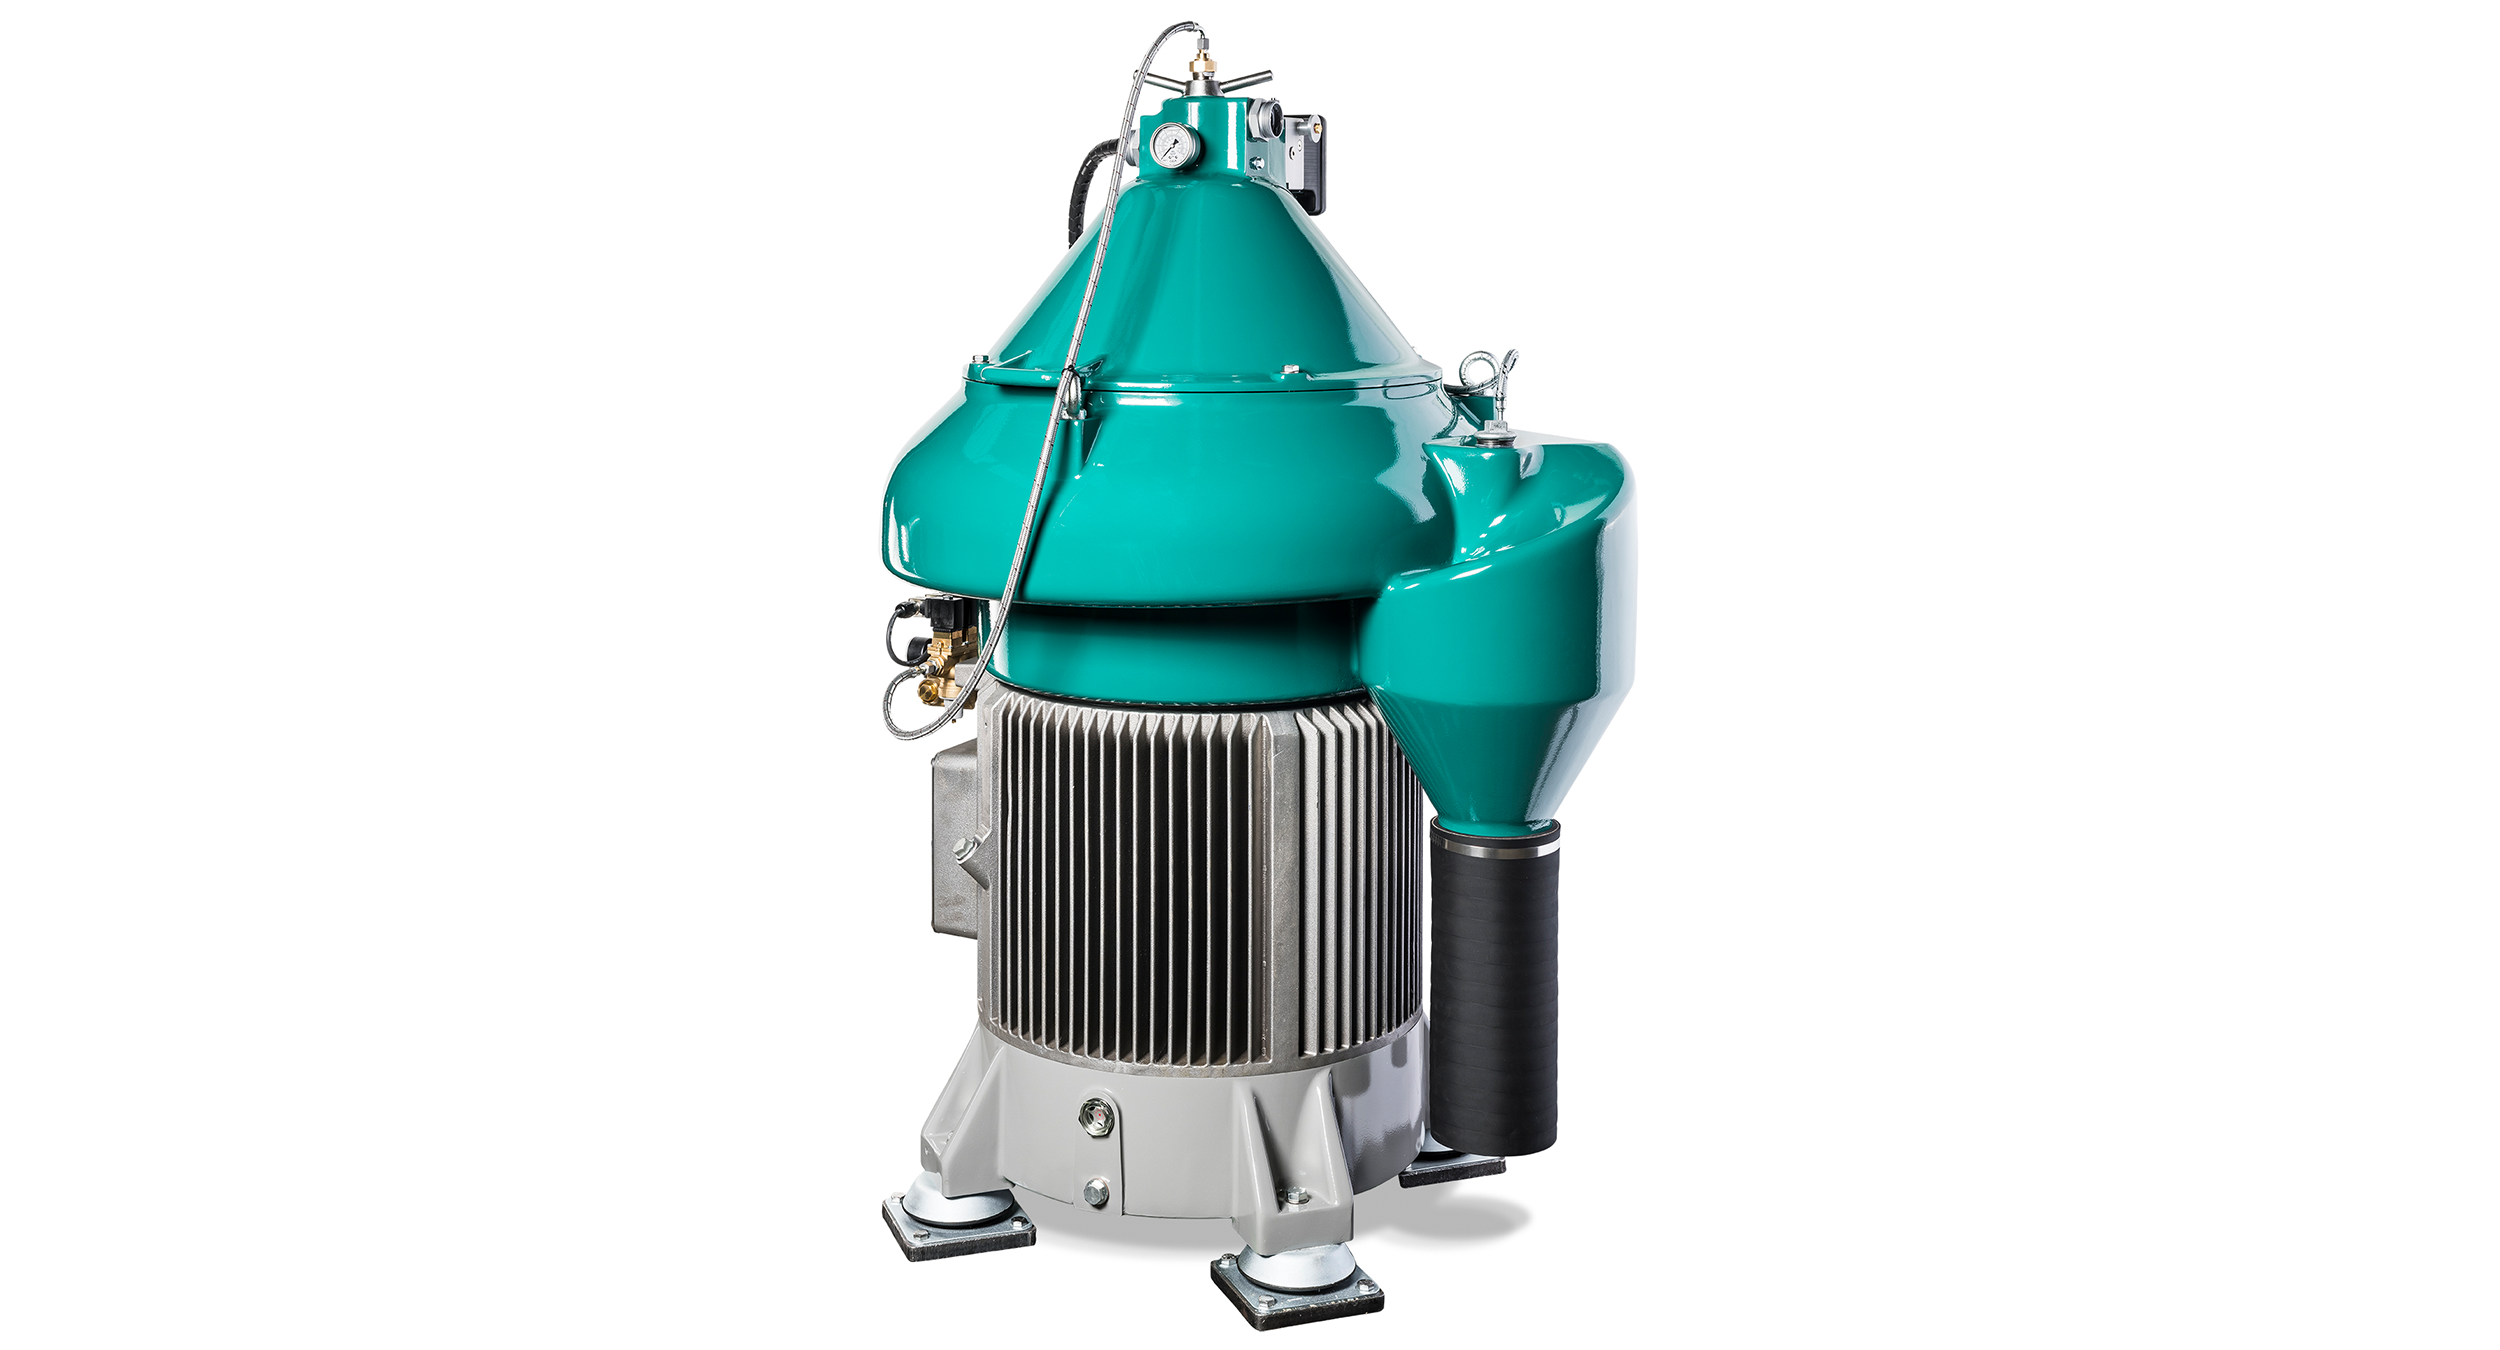 The new GEA marine Separator with integrated direct drive sustainably increases the efficiency on board.